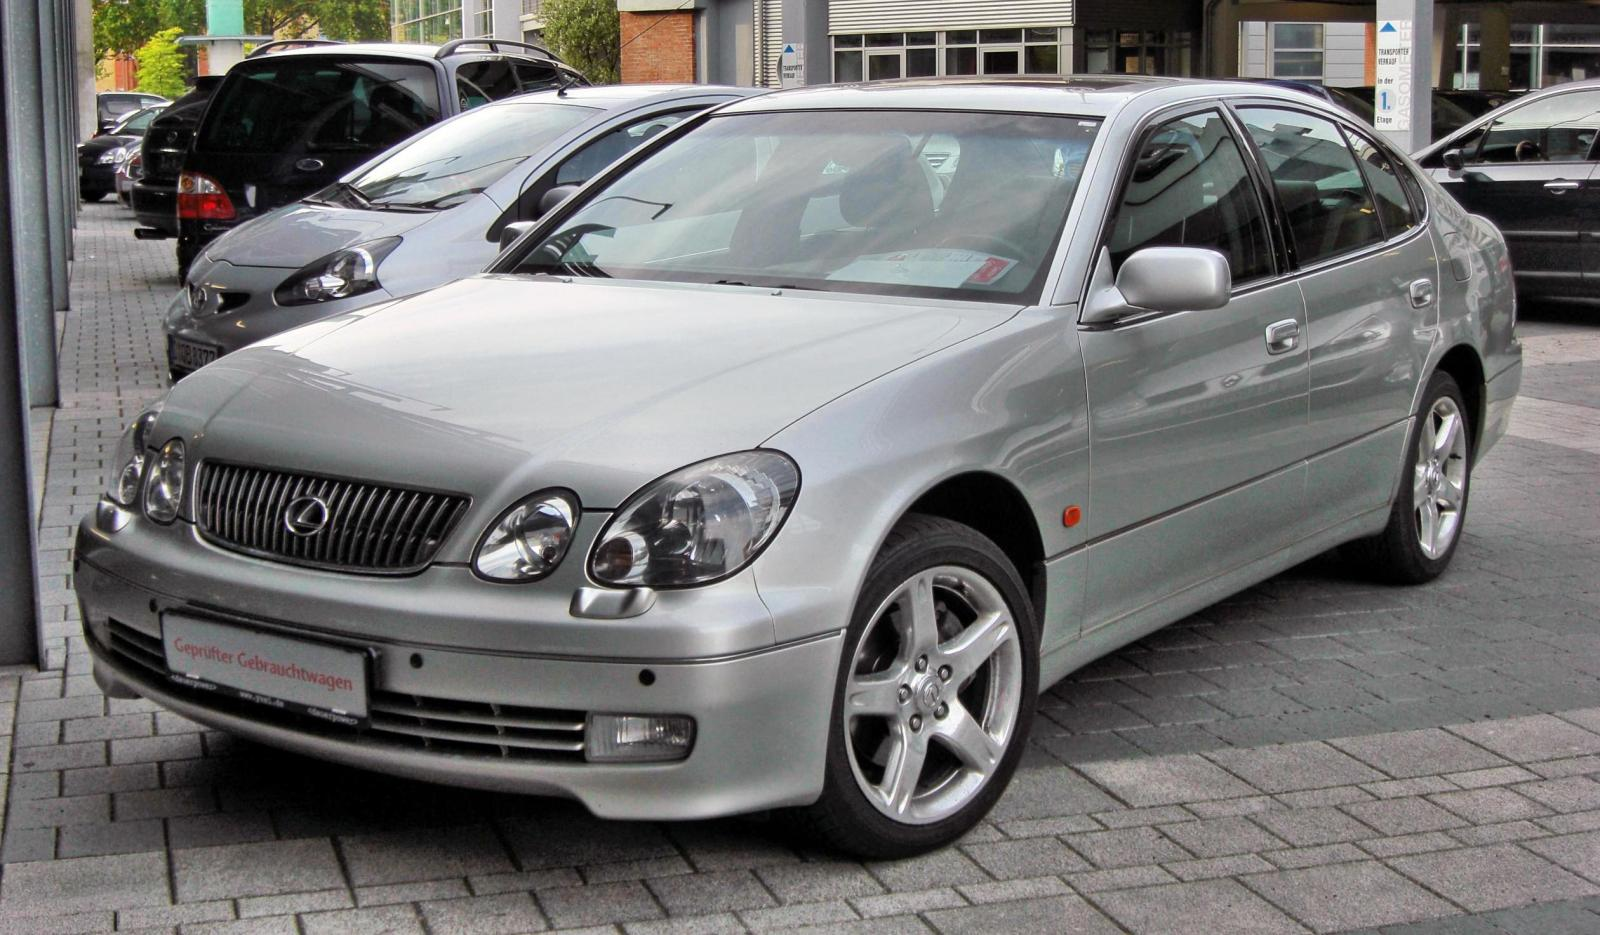 2005 lexus gs 430 information and photos zombiedrive. Black Bedroom Furniture Sets. Home Design Ideas